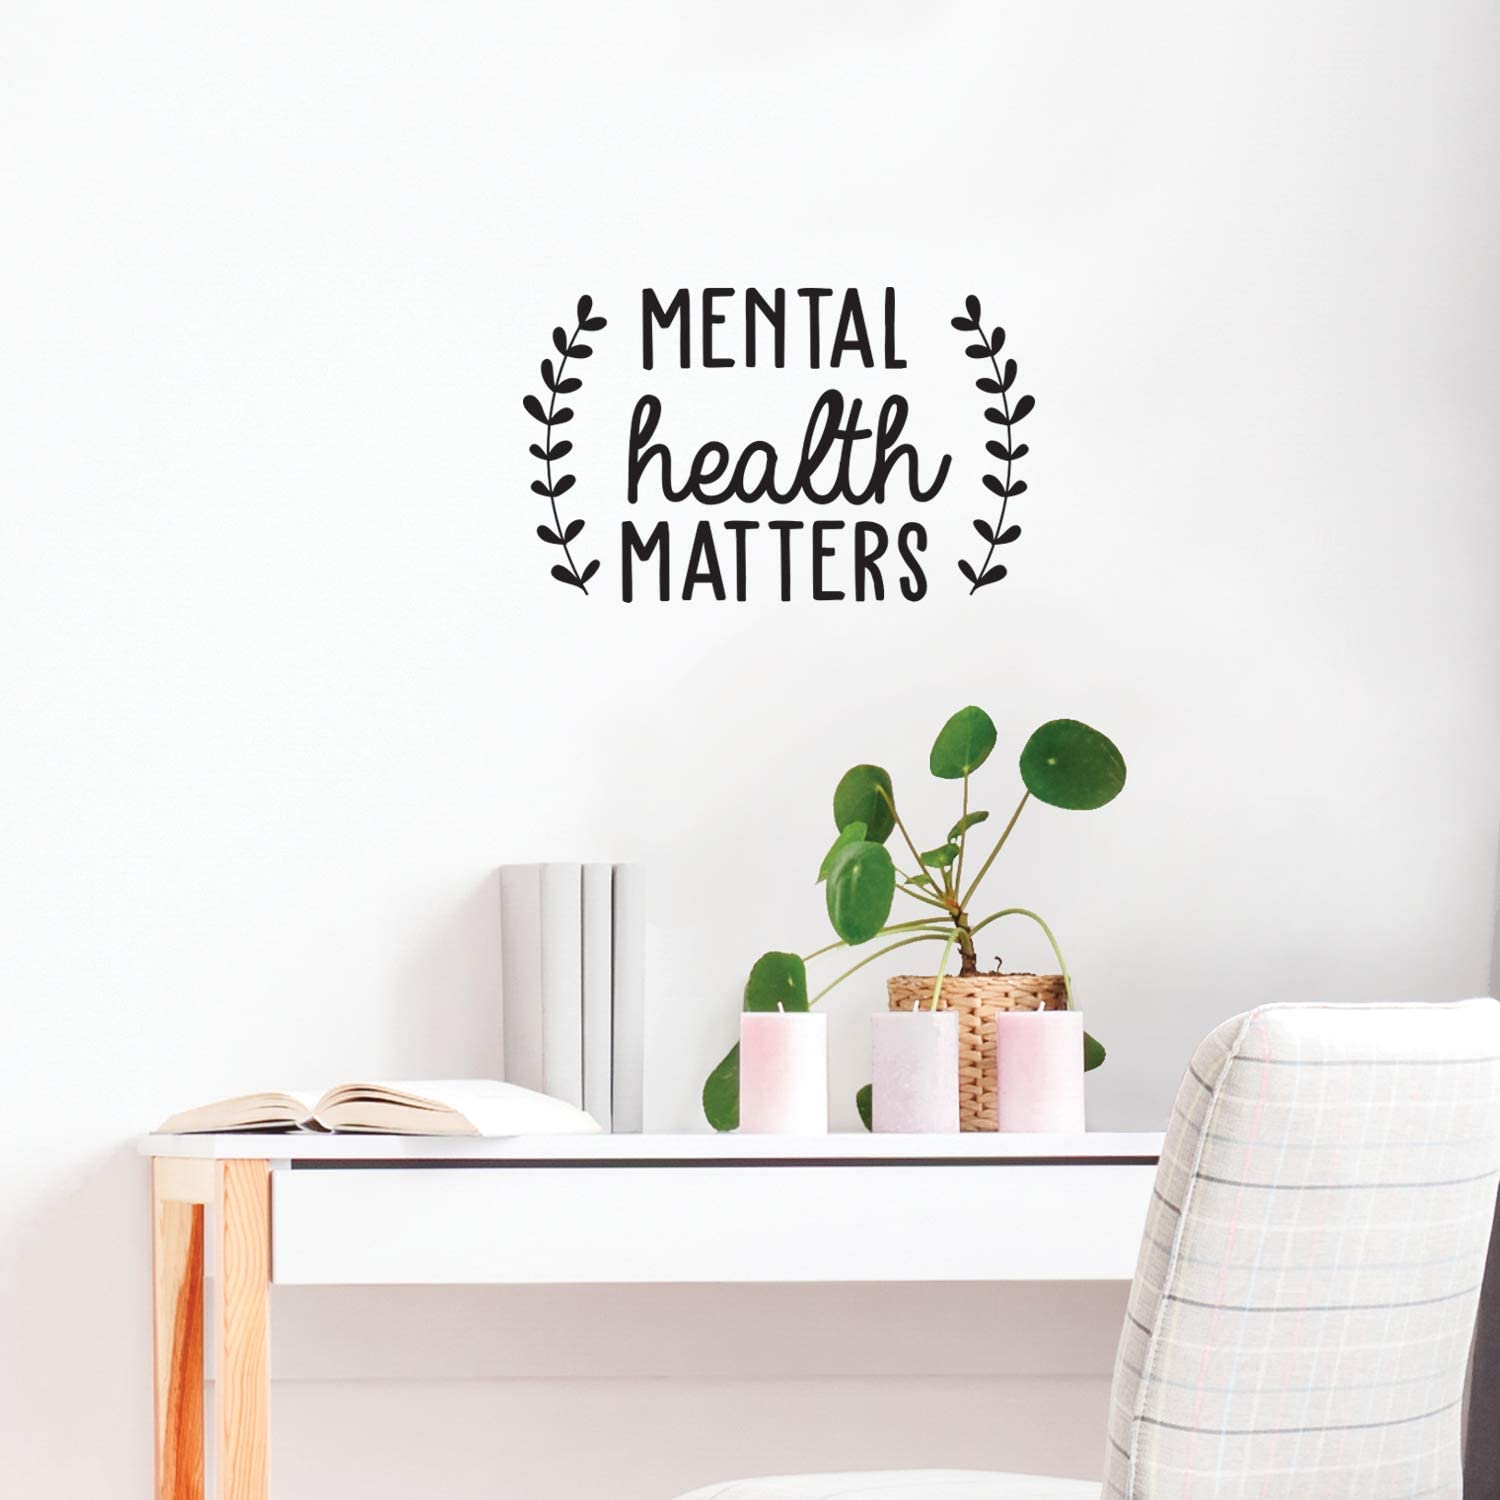 "Vinyl Wall Art Decal - Mental Health Matters - 15.5"" x 25"" - Modern Inspirational Quote Sticker for Home Bedroom Living Room Apartment Work Office Decor (Black)"